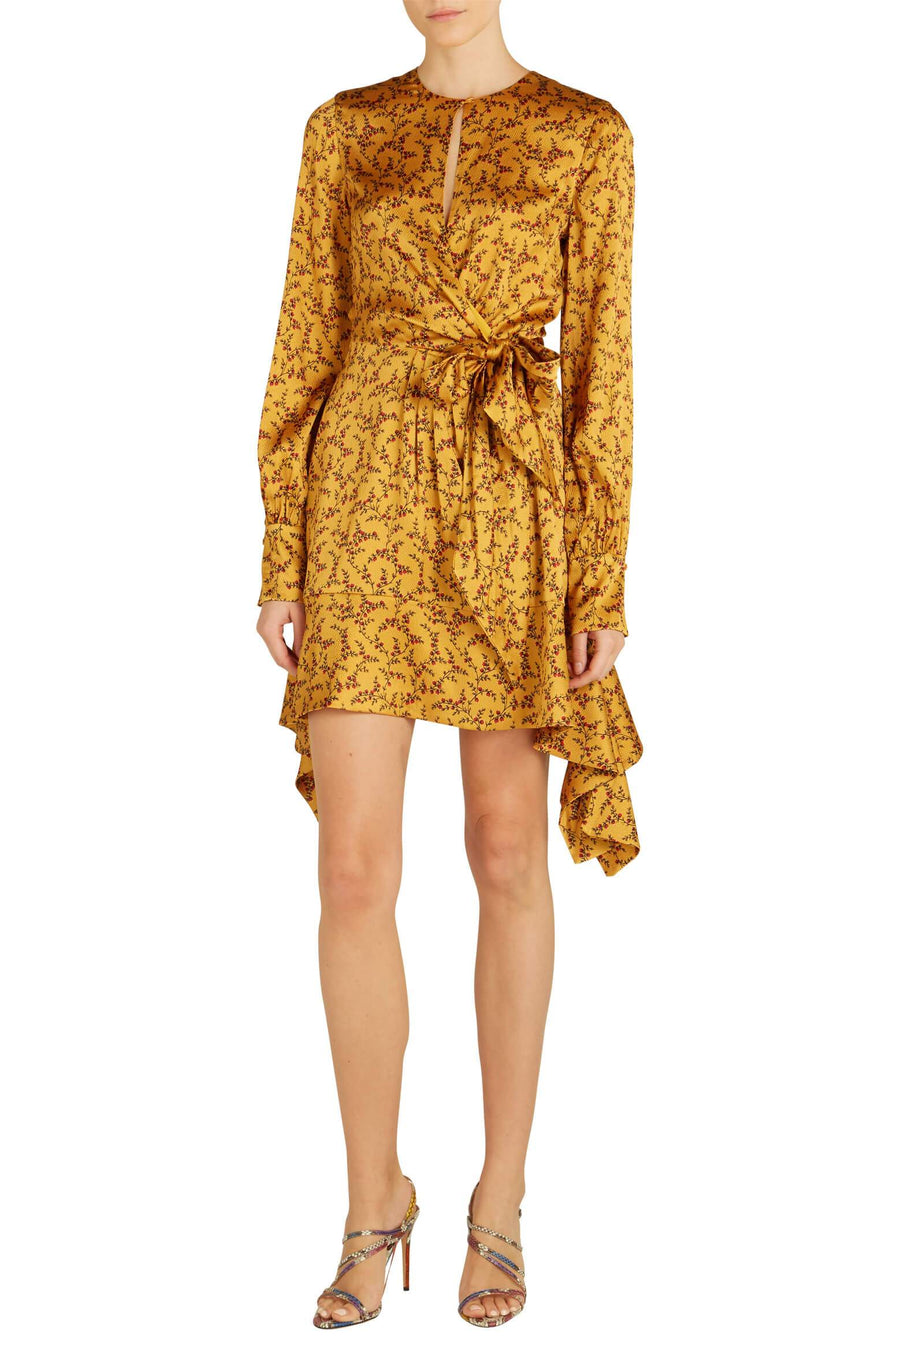 Jonathan Simkhai Hammered Silk Keyhole Dress from The New Trend